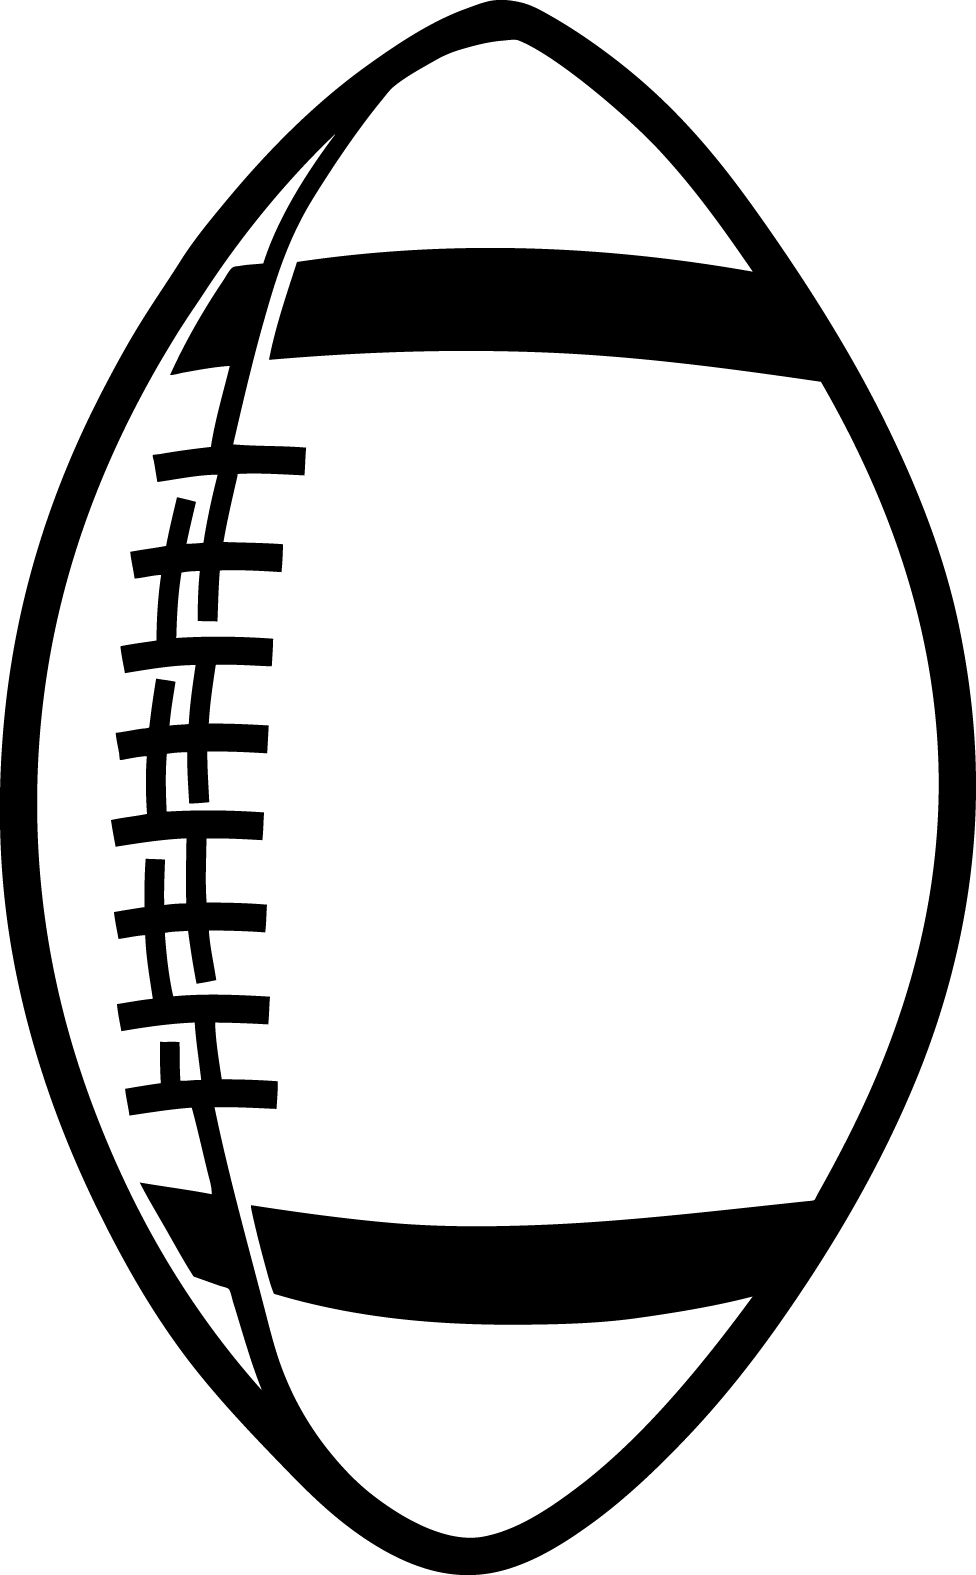 Black & white football clipart image stock Dragonfly Outline Clipart | Clipart Panda - Free Clipart Images ... image stock